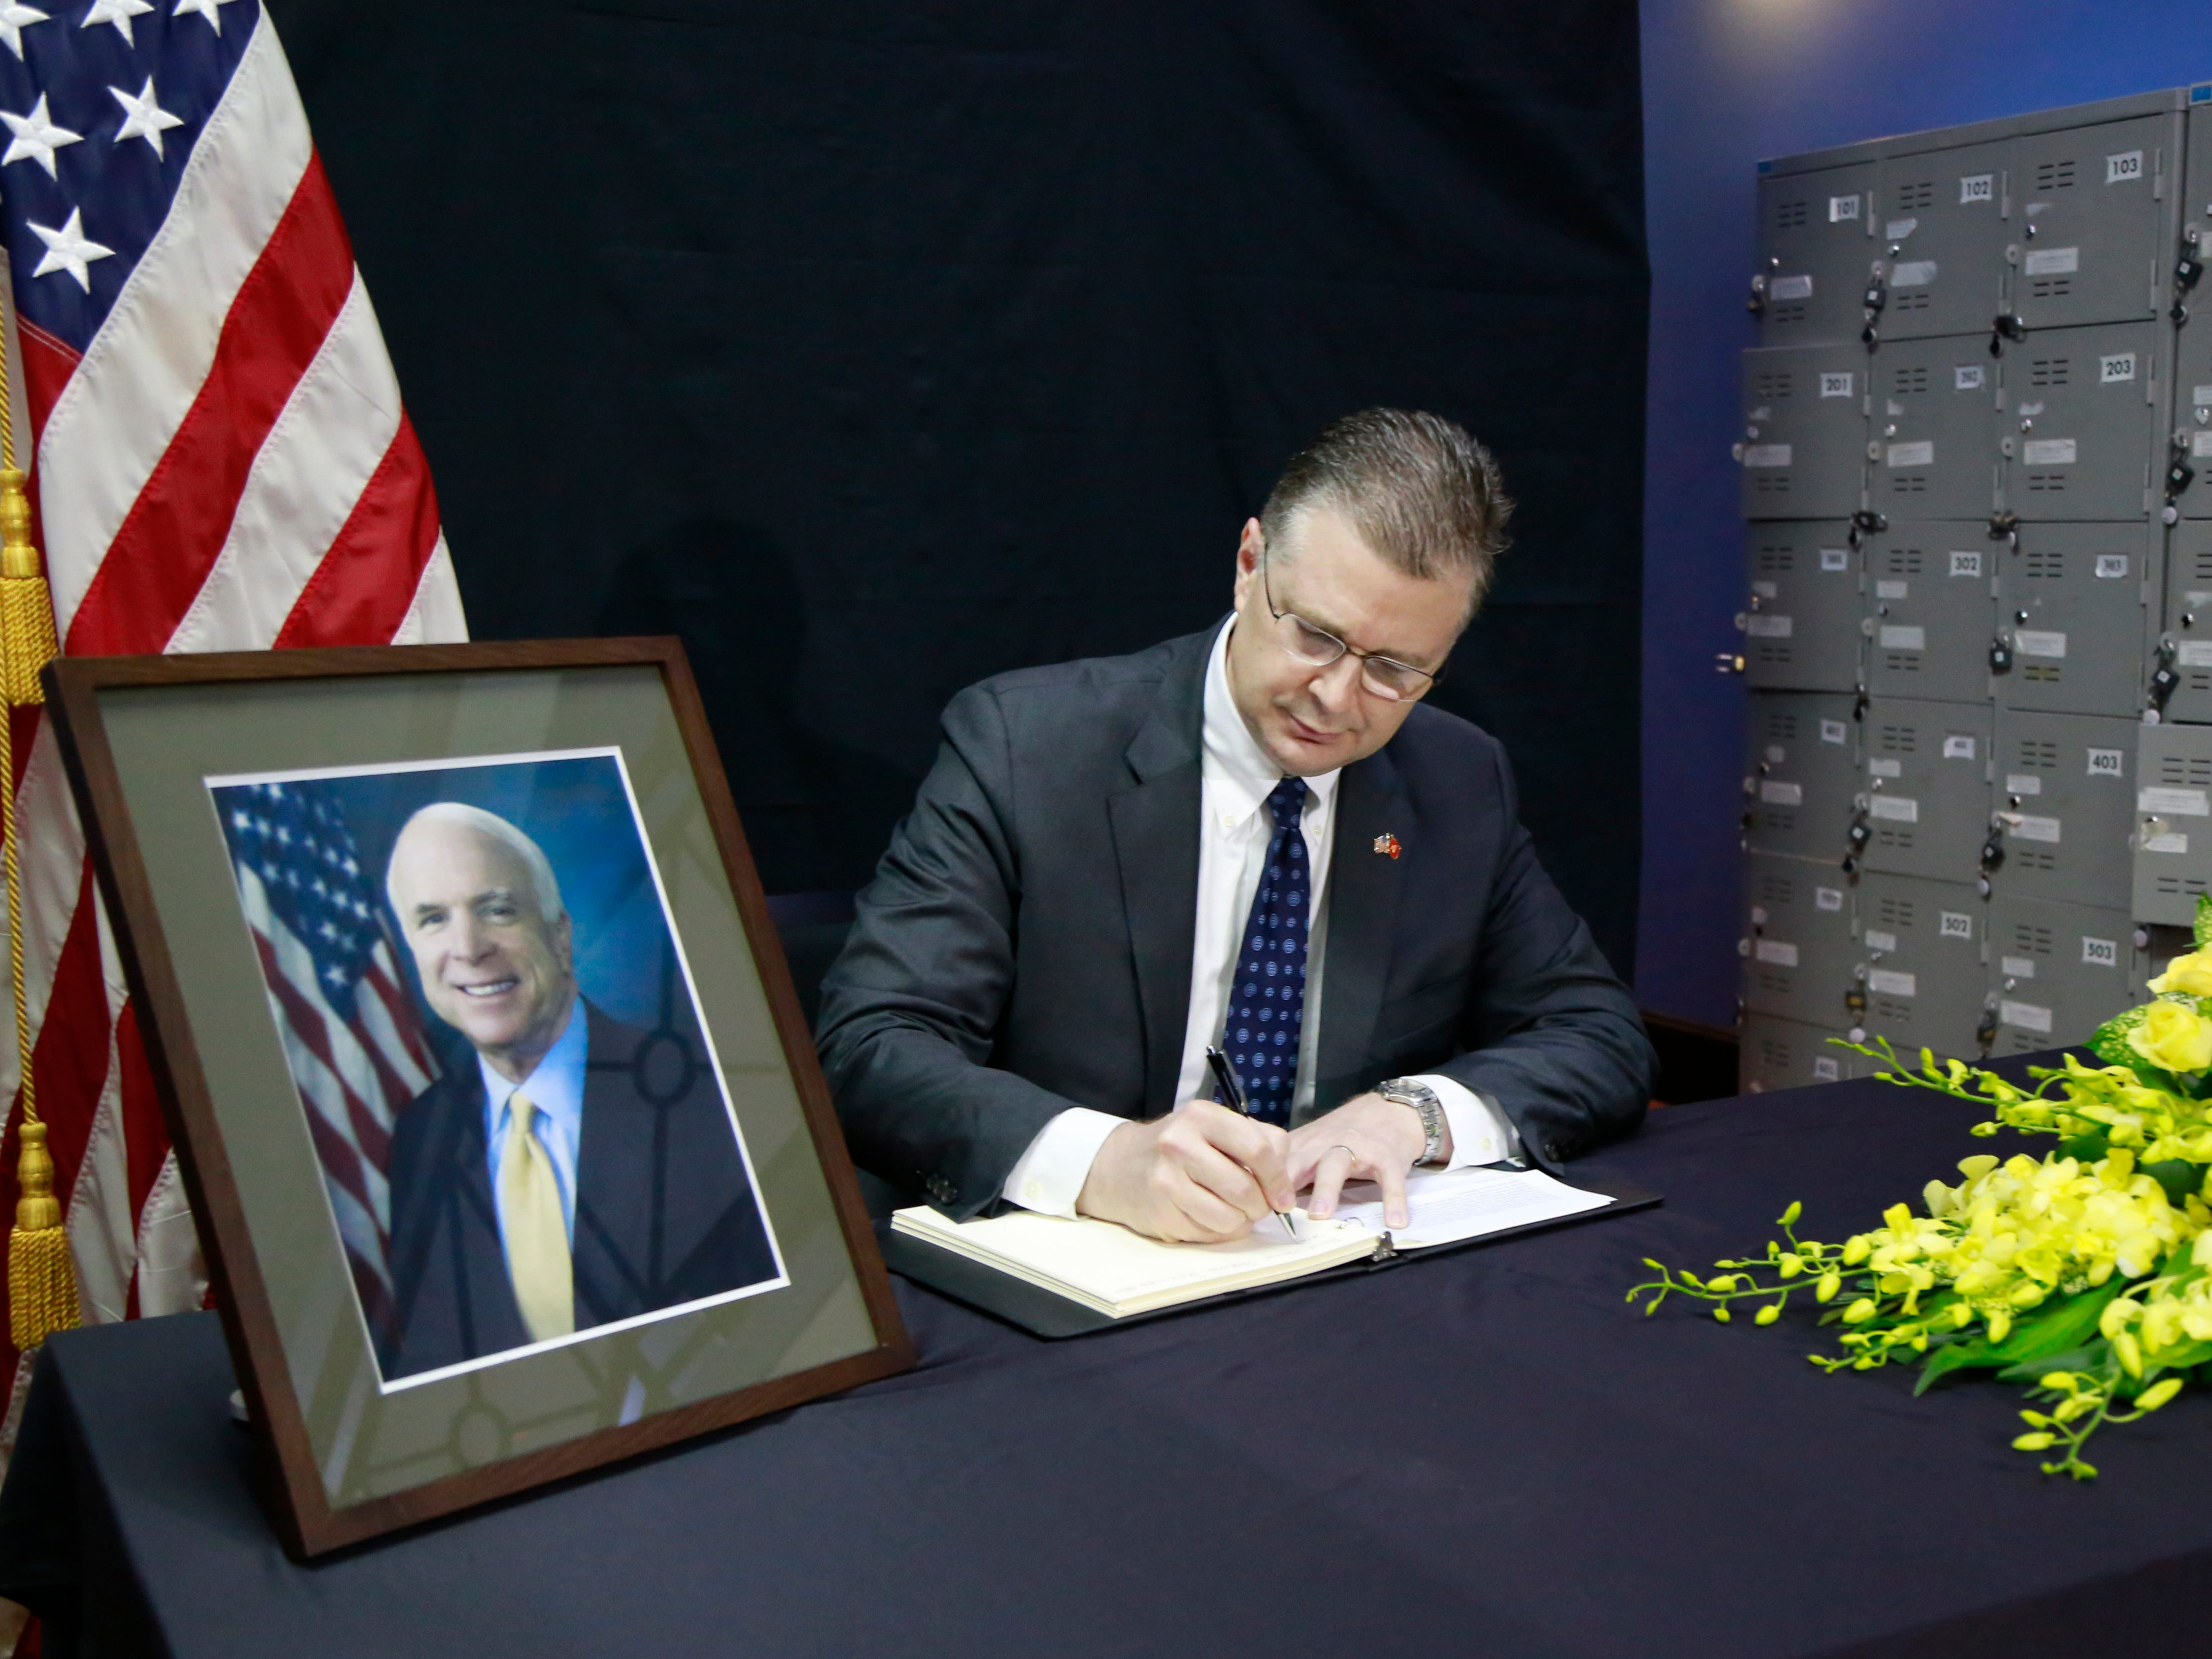 U.S. Ambassador to Vietnam Daniel Kritenbrink writes a note in a book of condolences for the late U.S. Senator John McCain in Hanoi, Vietnam, Aug. 27, 2018.